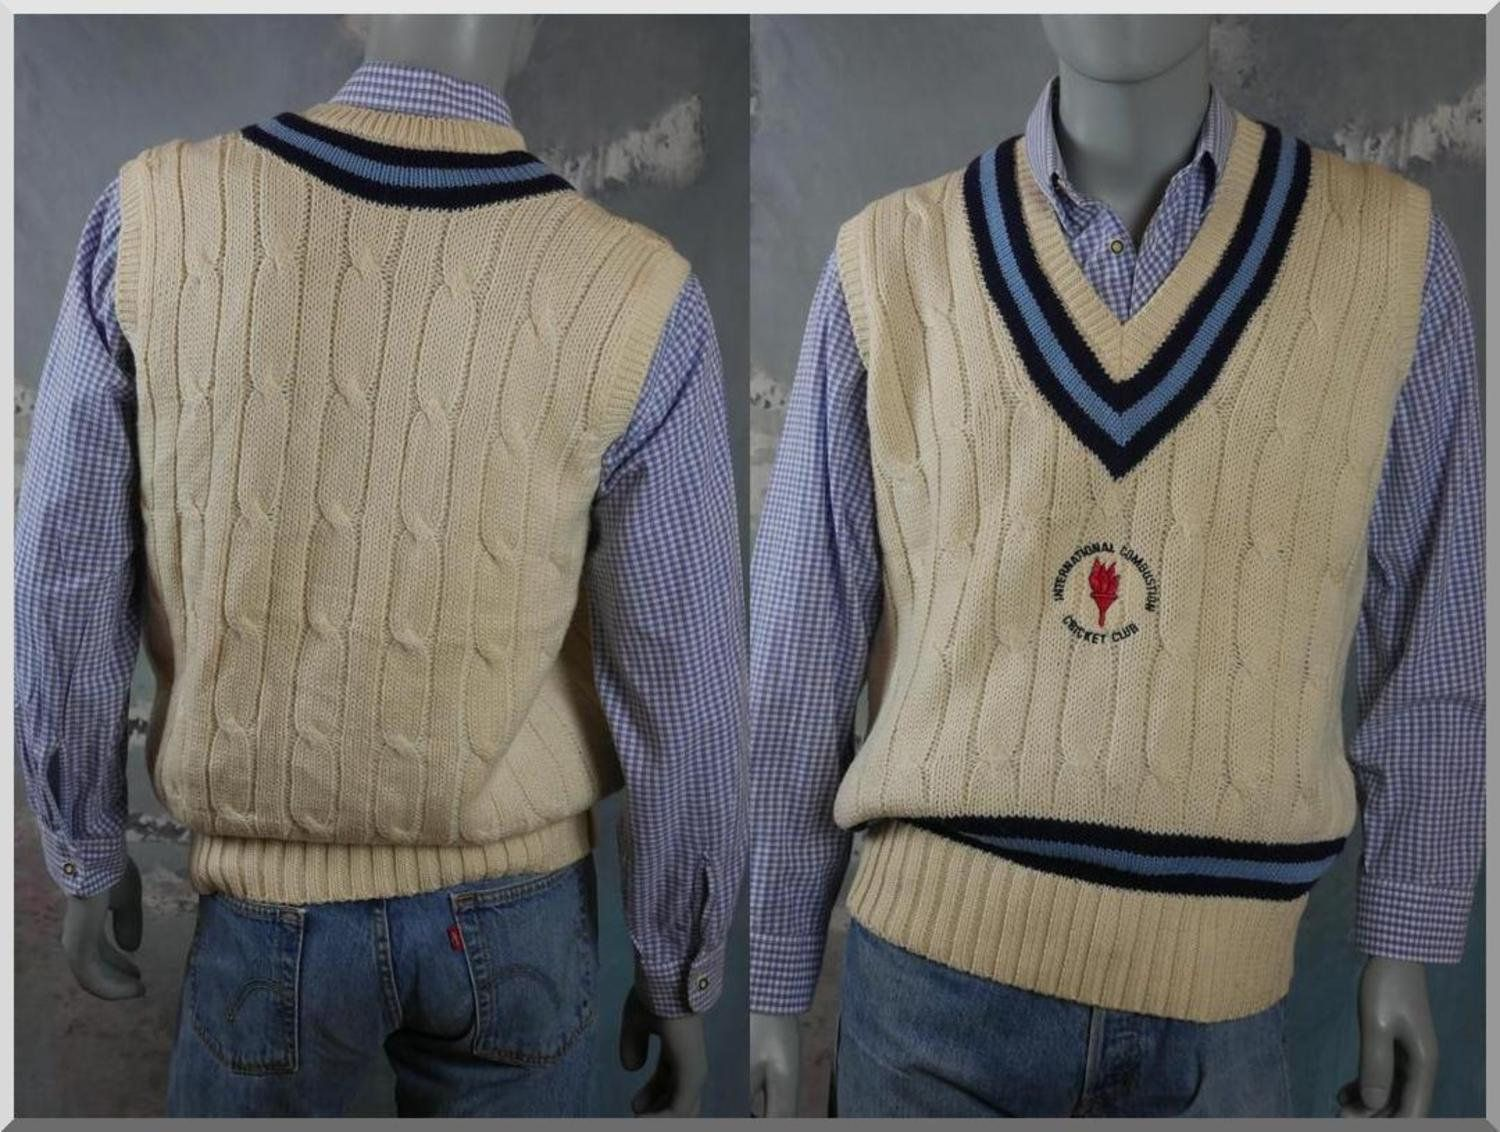 British Vintage Cricket Sweater Vest Cable Knit Cream Wool Pullover Eton Cambridge Collection Mad Vintage Clothing Online Vintage Outfits Steampunk Jacket